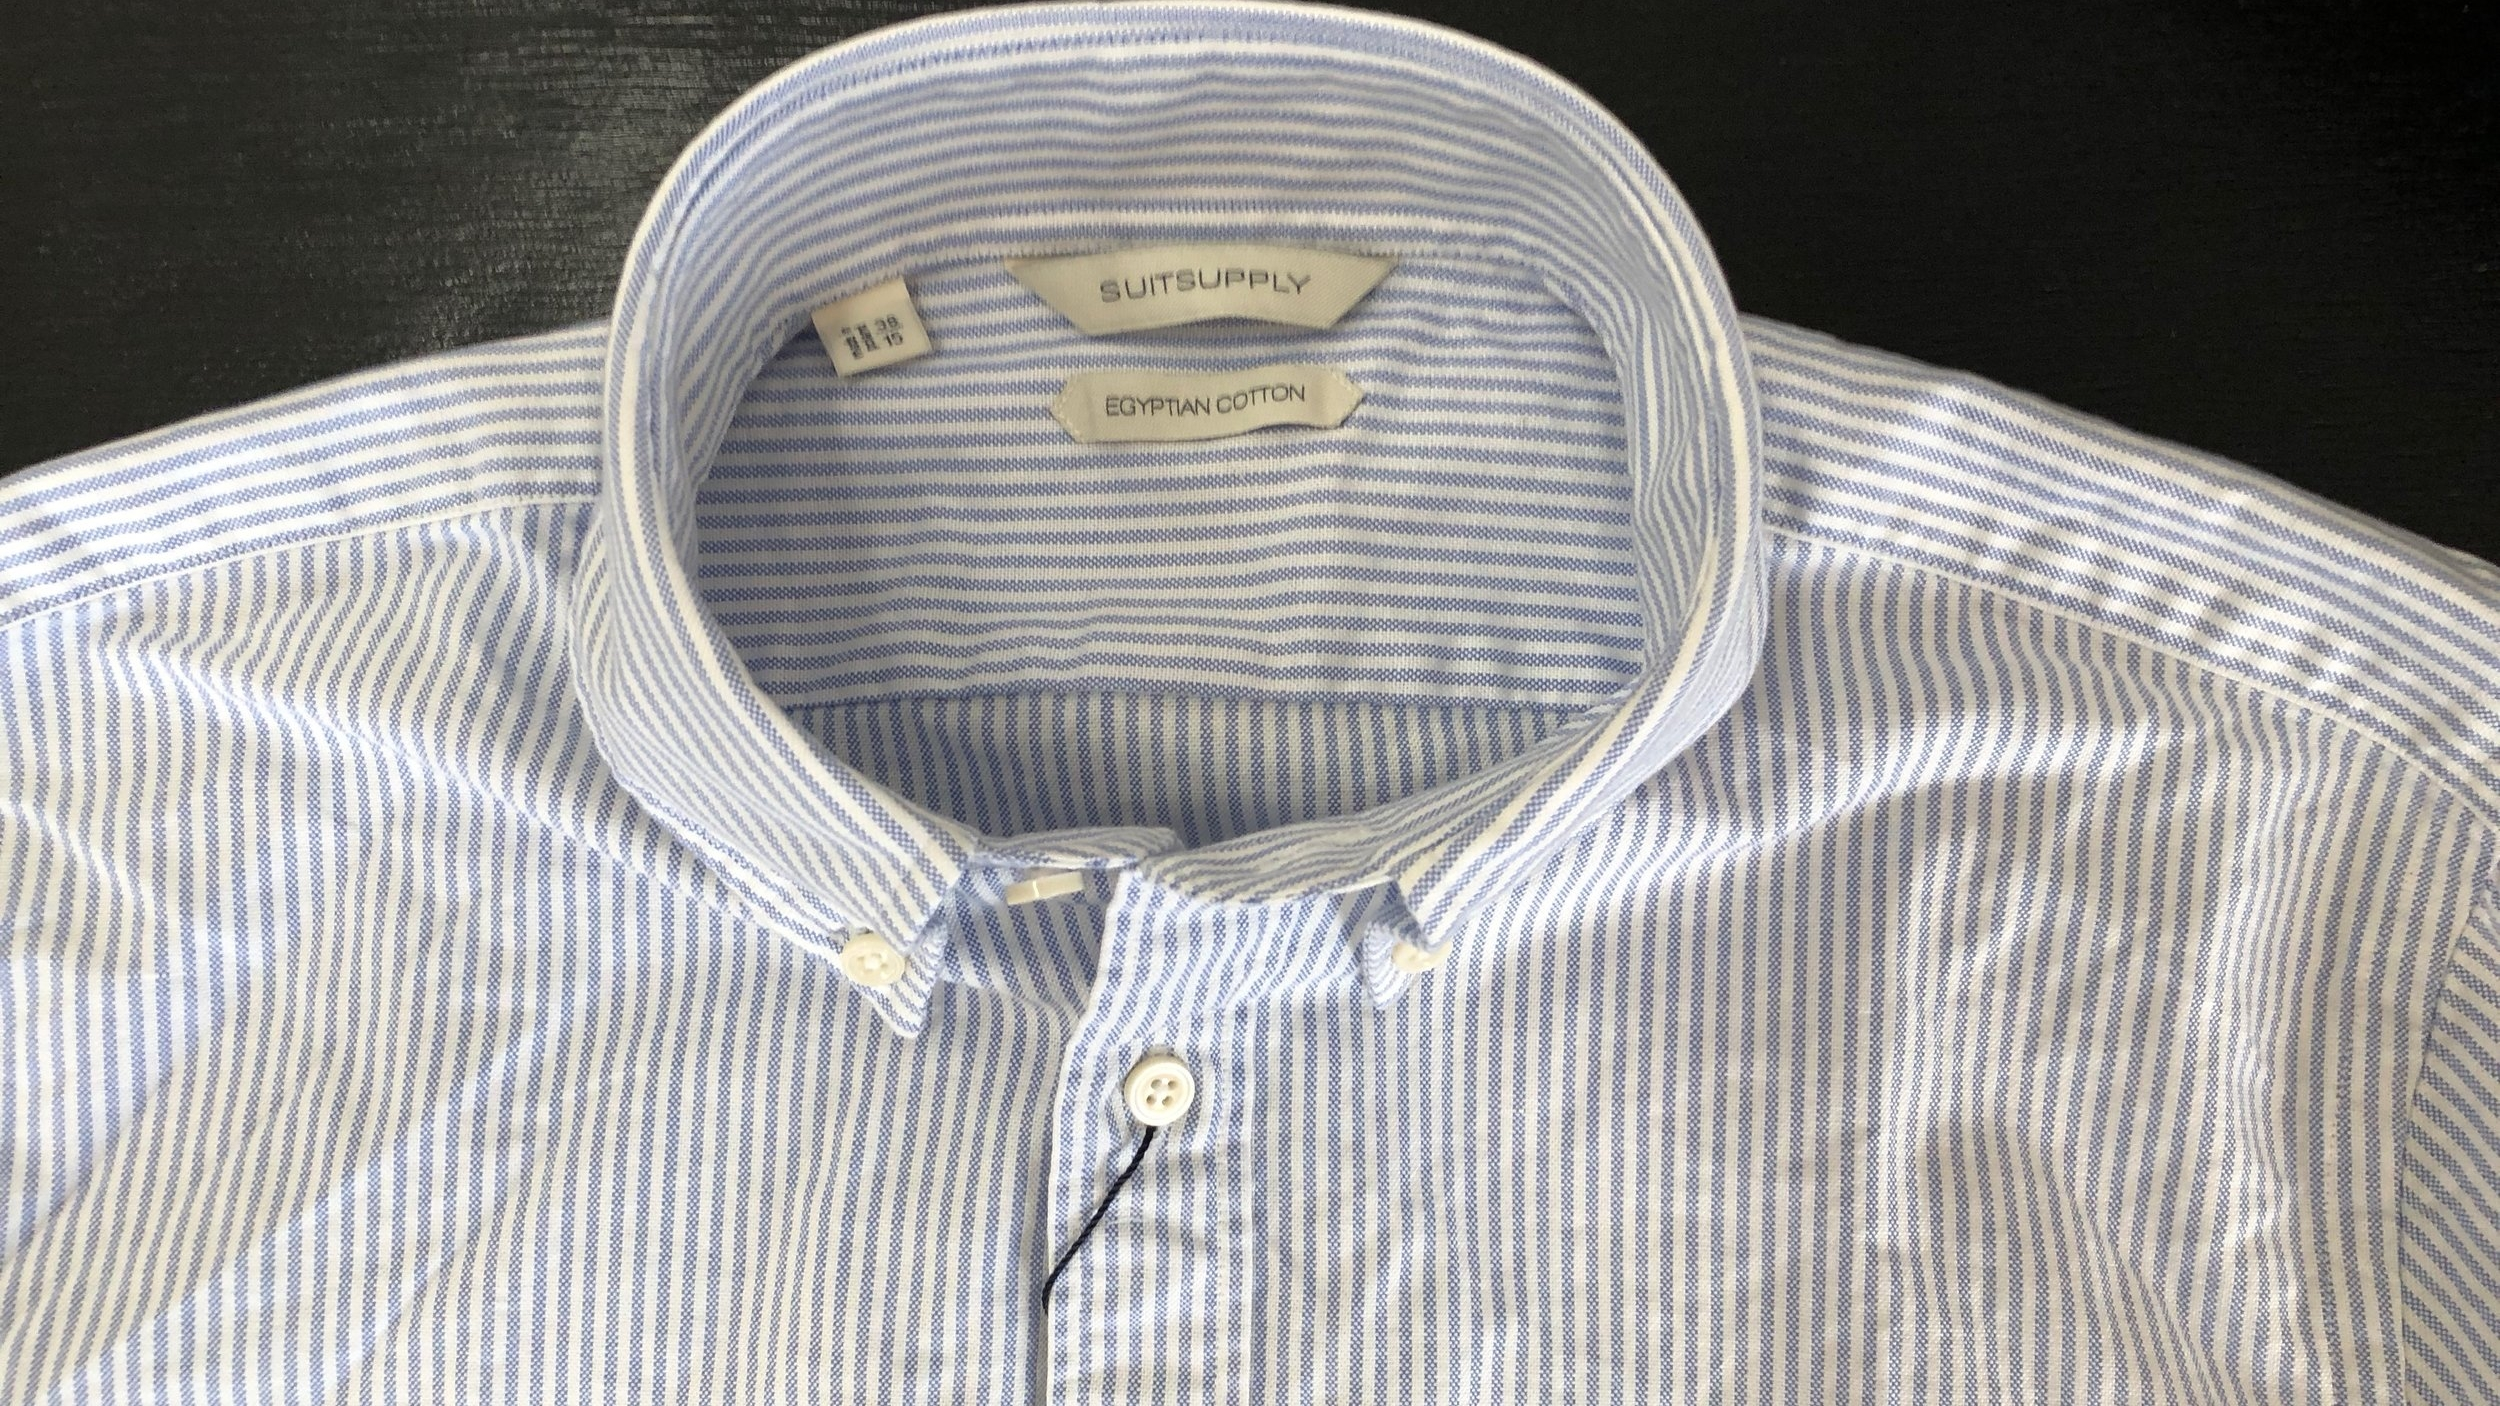 The new custom dress shirts from uniqlo a detailed for Charles tyrwhitt shirts review